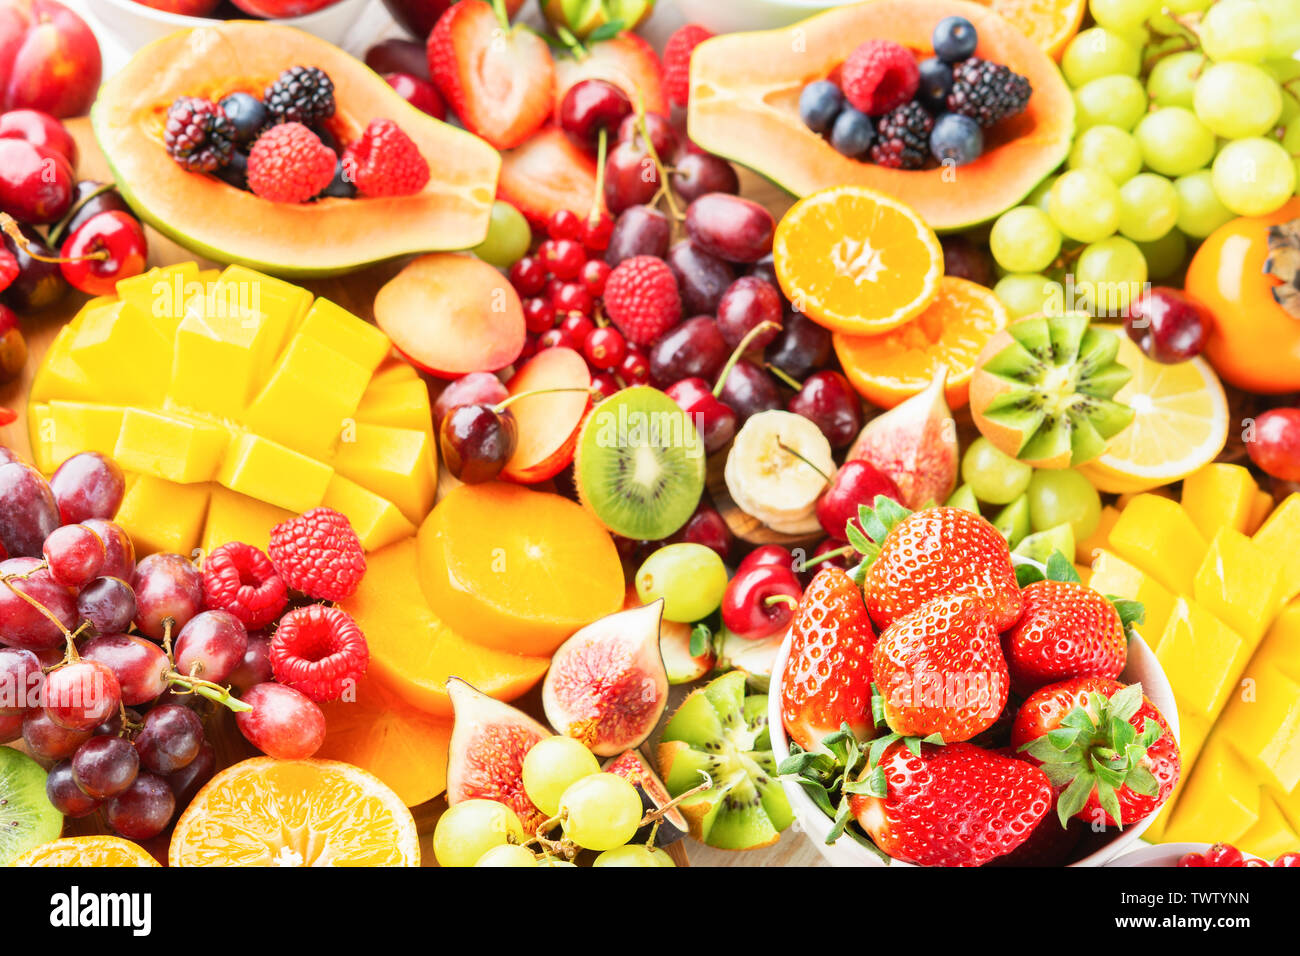 Raw cut fruit platter background, strawberries raspberries oranges plums apples kiwis grapes red currants blueberries mango persimmon, selective focus - Stock Image